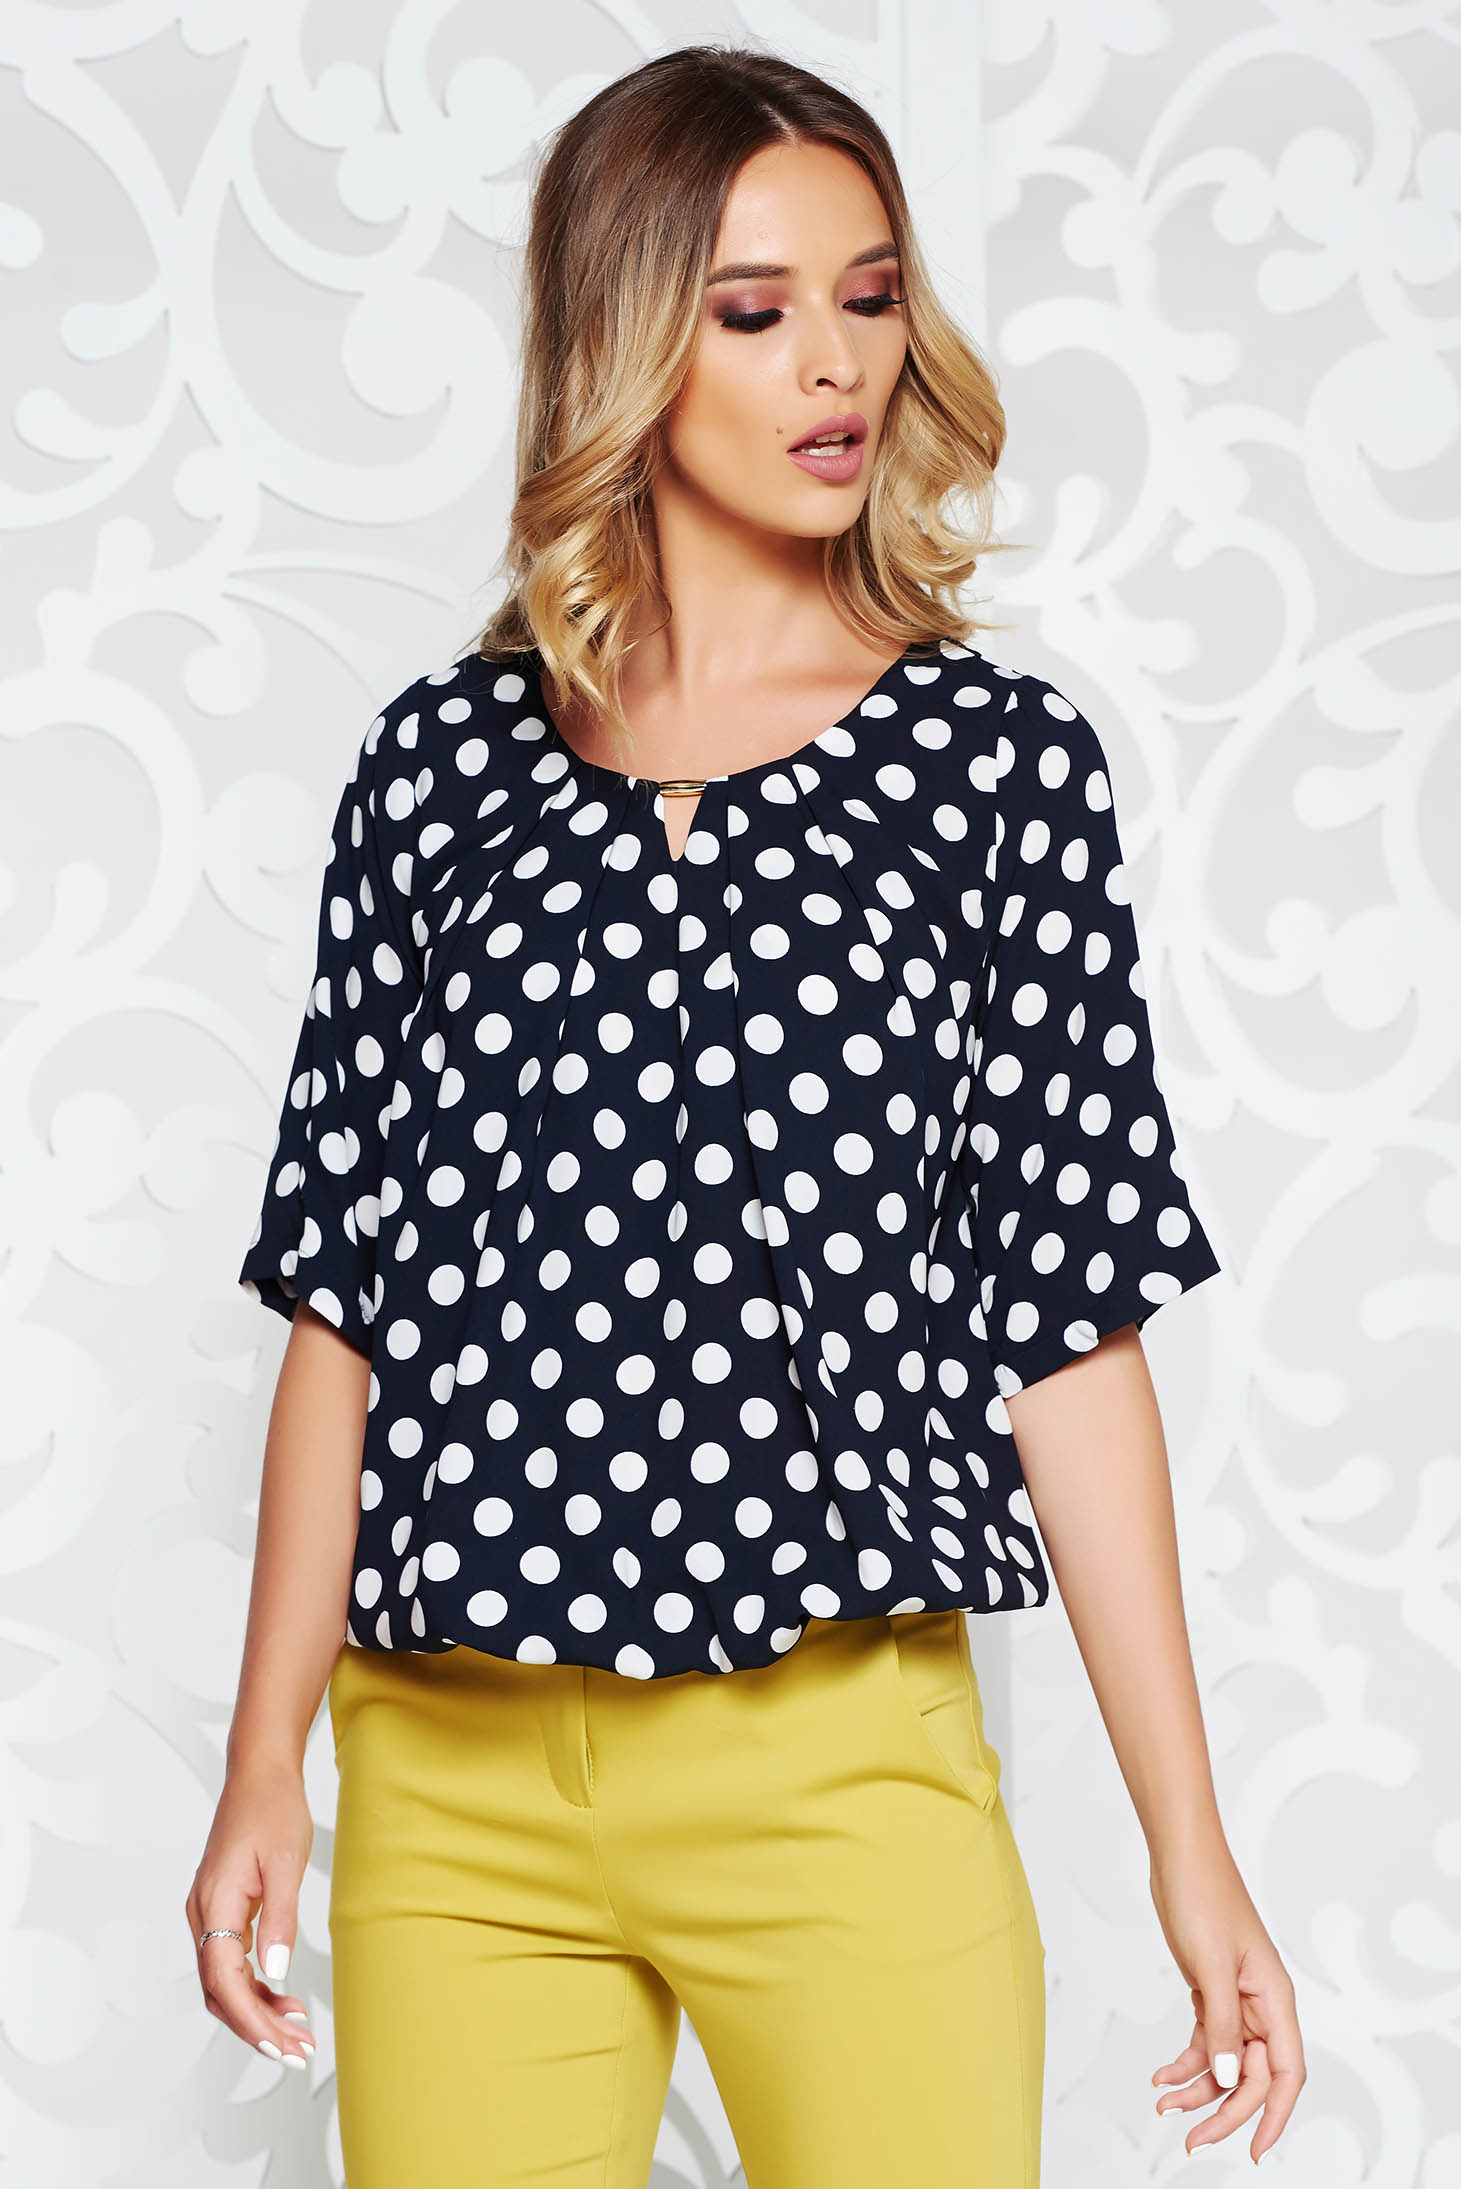 4daf63bedd0c5f Darkblue office flared women`s blouse airy fabric with elastic waist ...